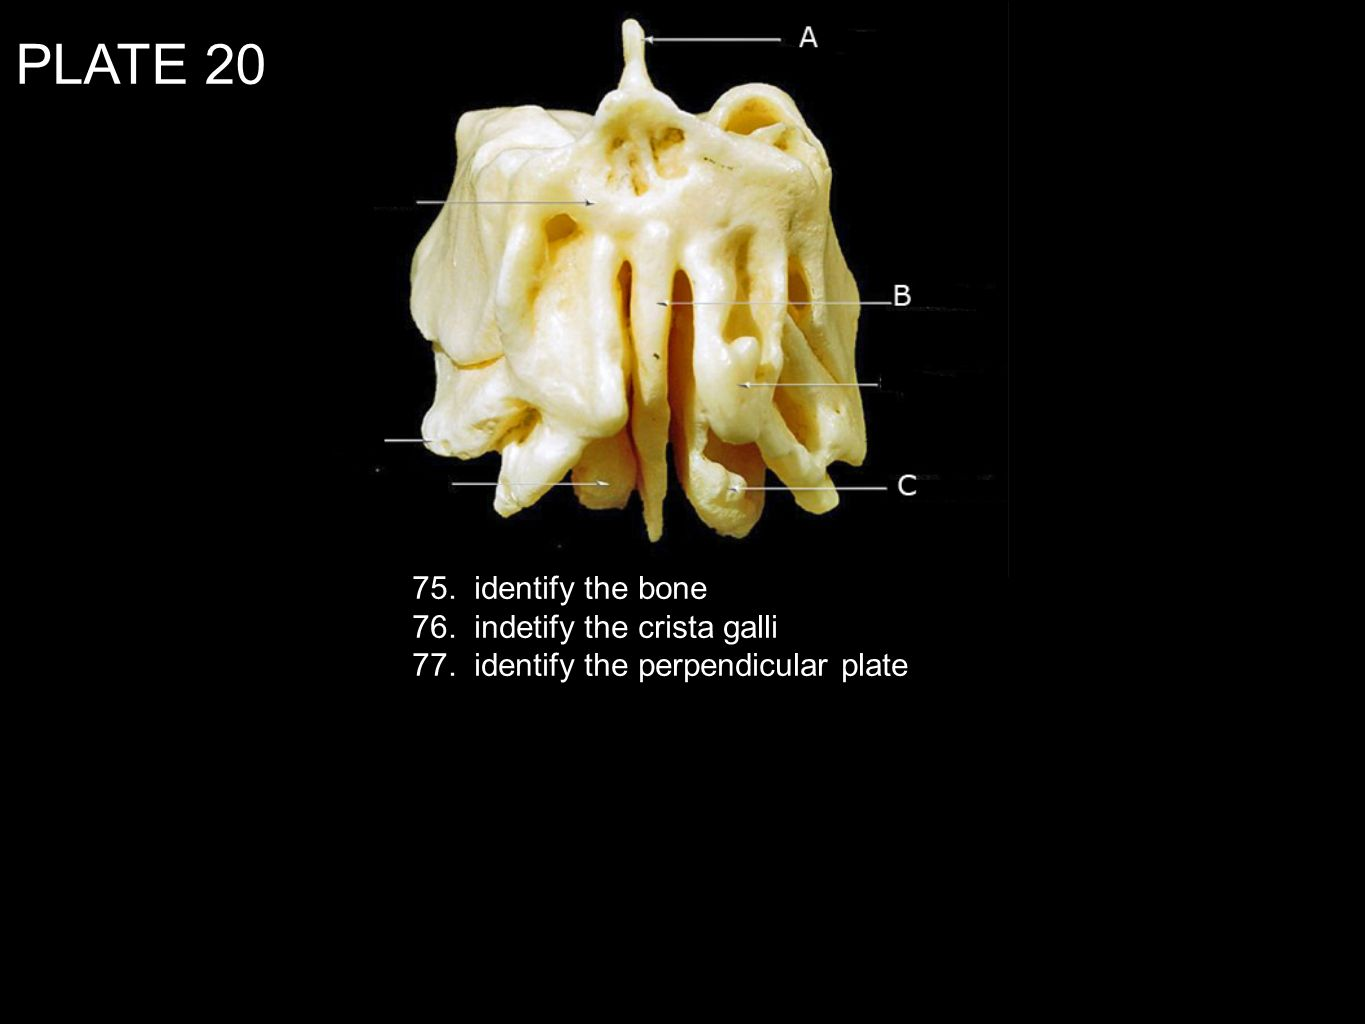 PLATE 20 75. identify the bone 76. indetify the crista galli